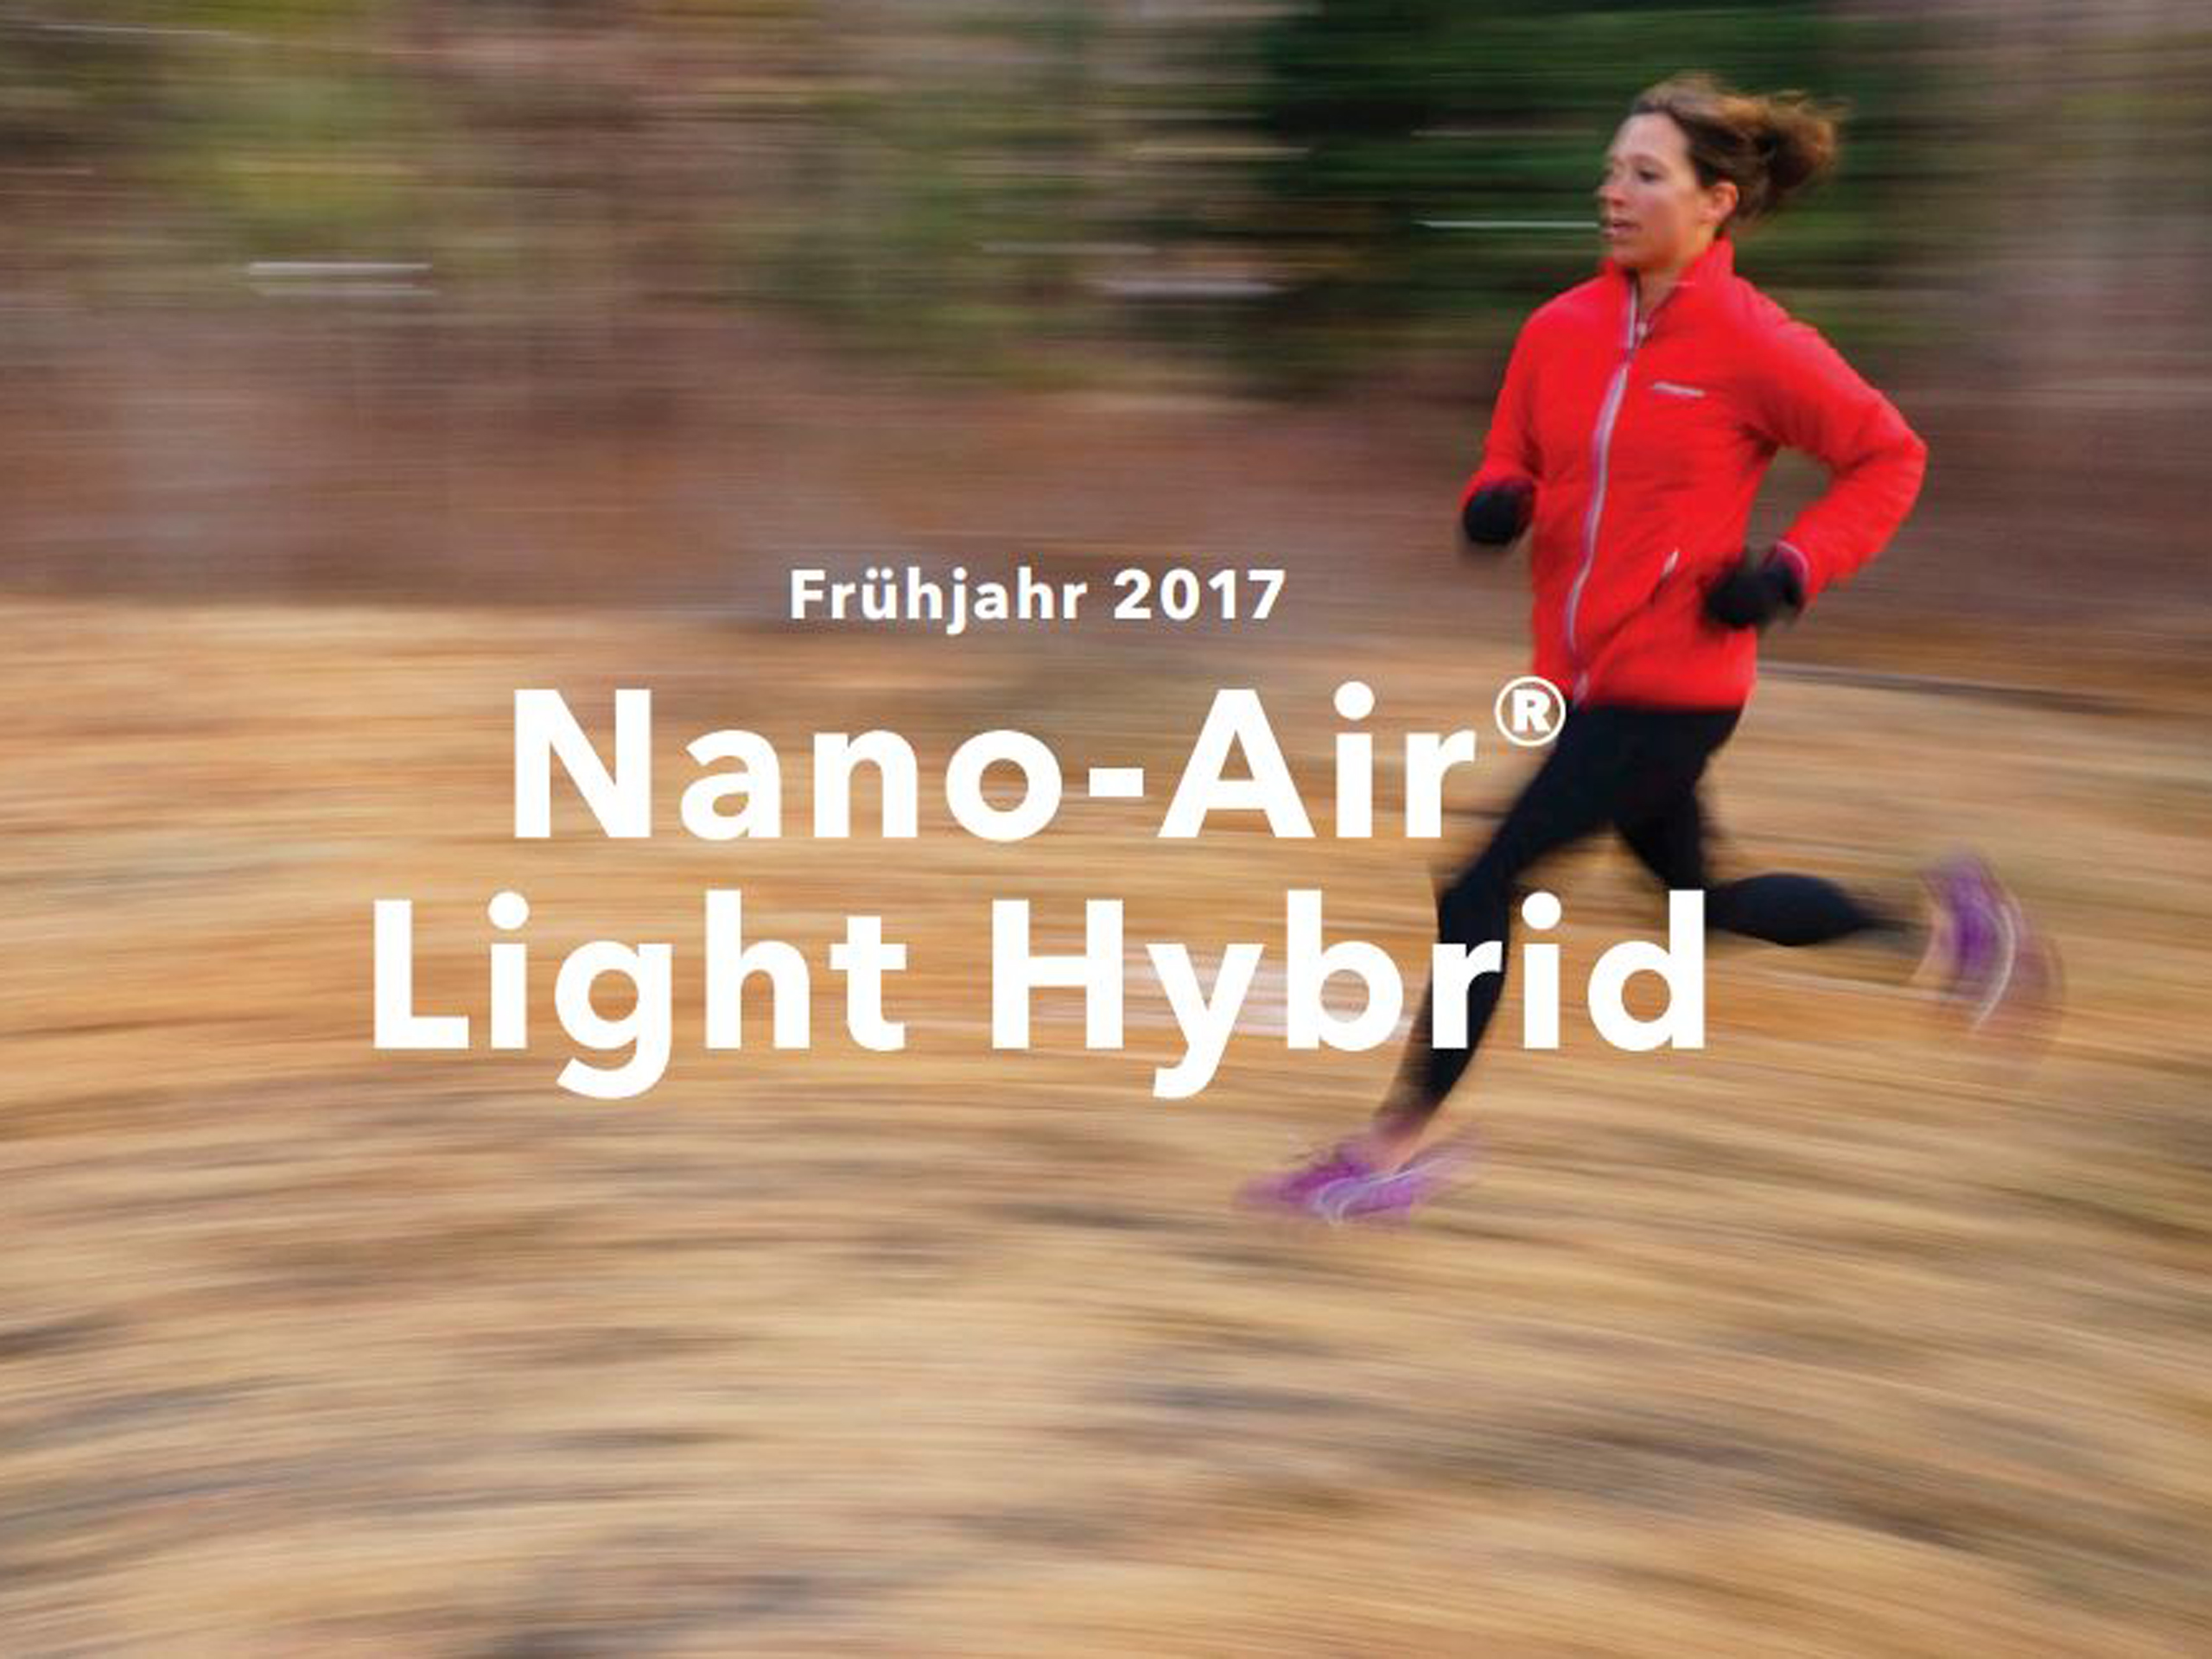 THE NEW NANO AIR LIGHT HYBRID JACKET FROM PATAGONIA